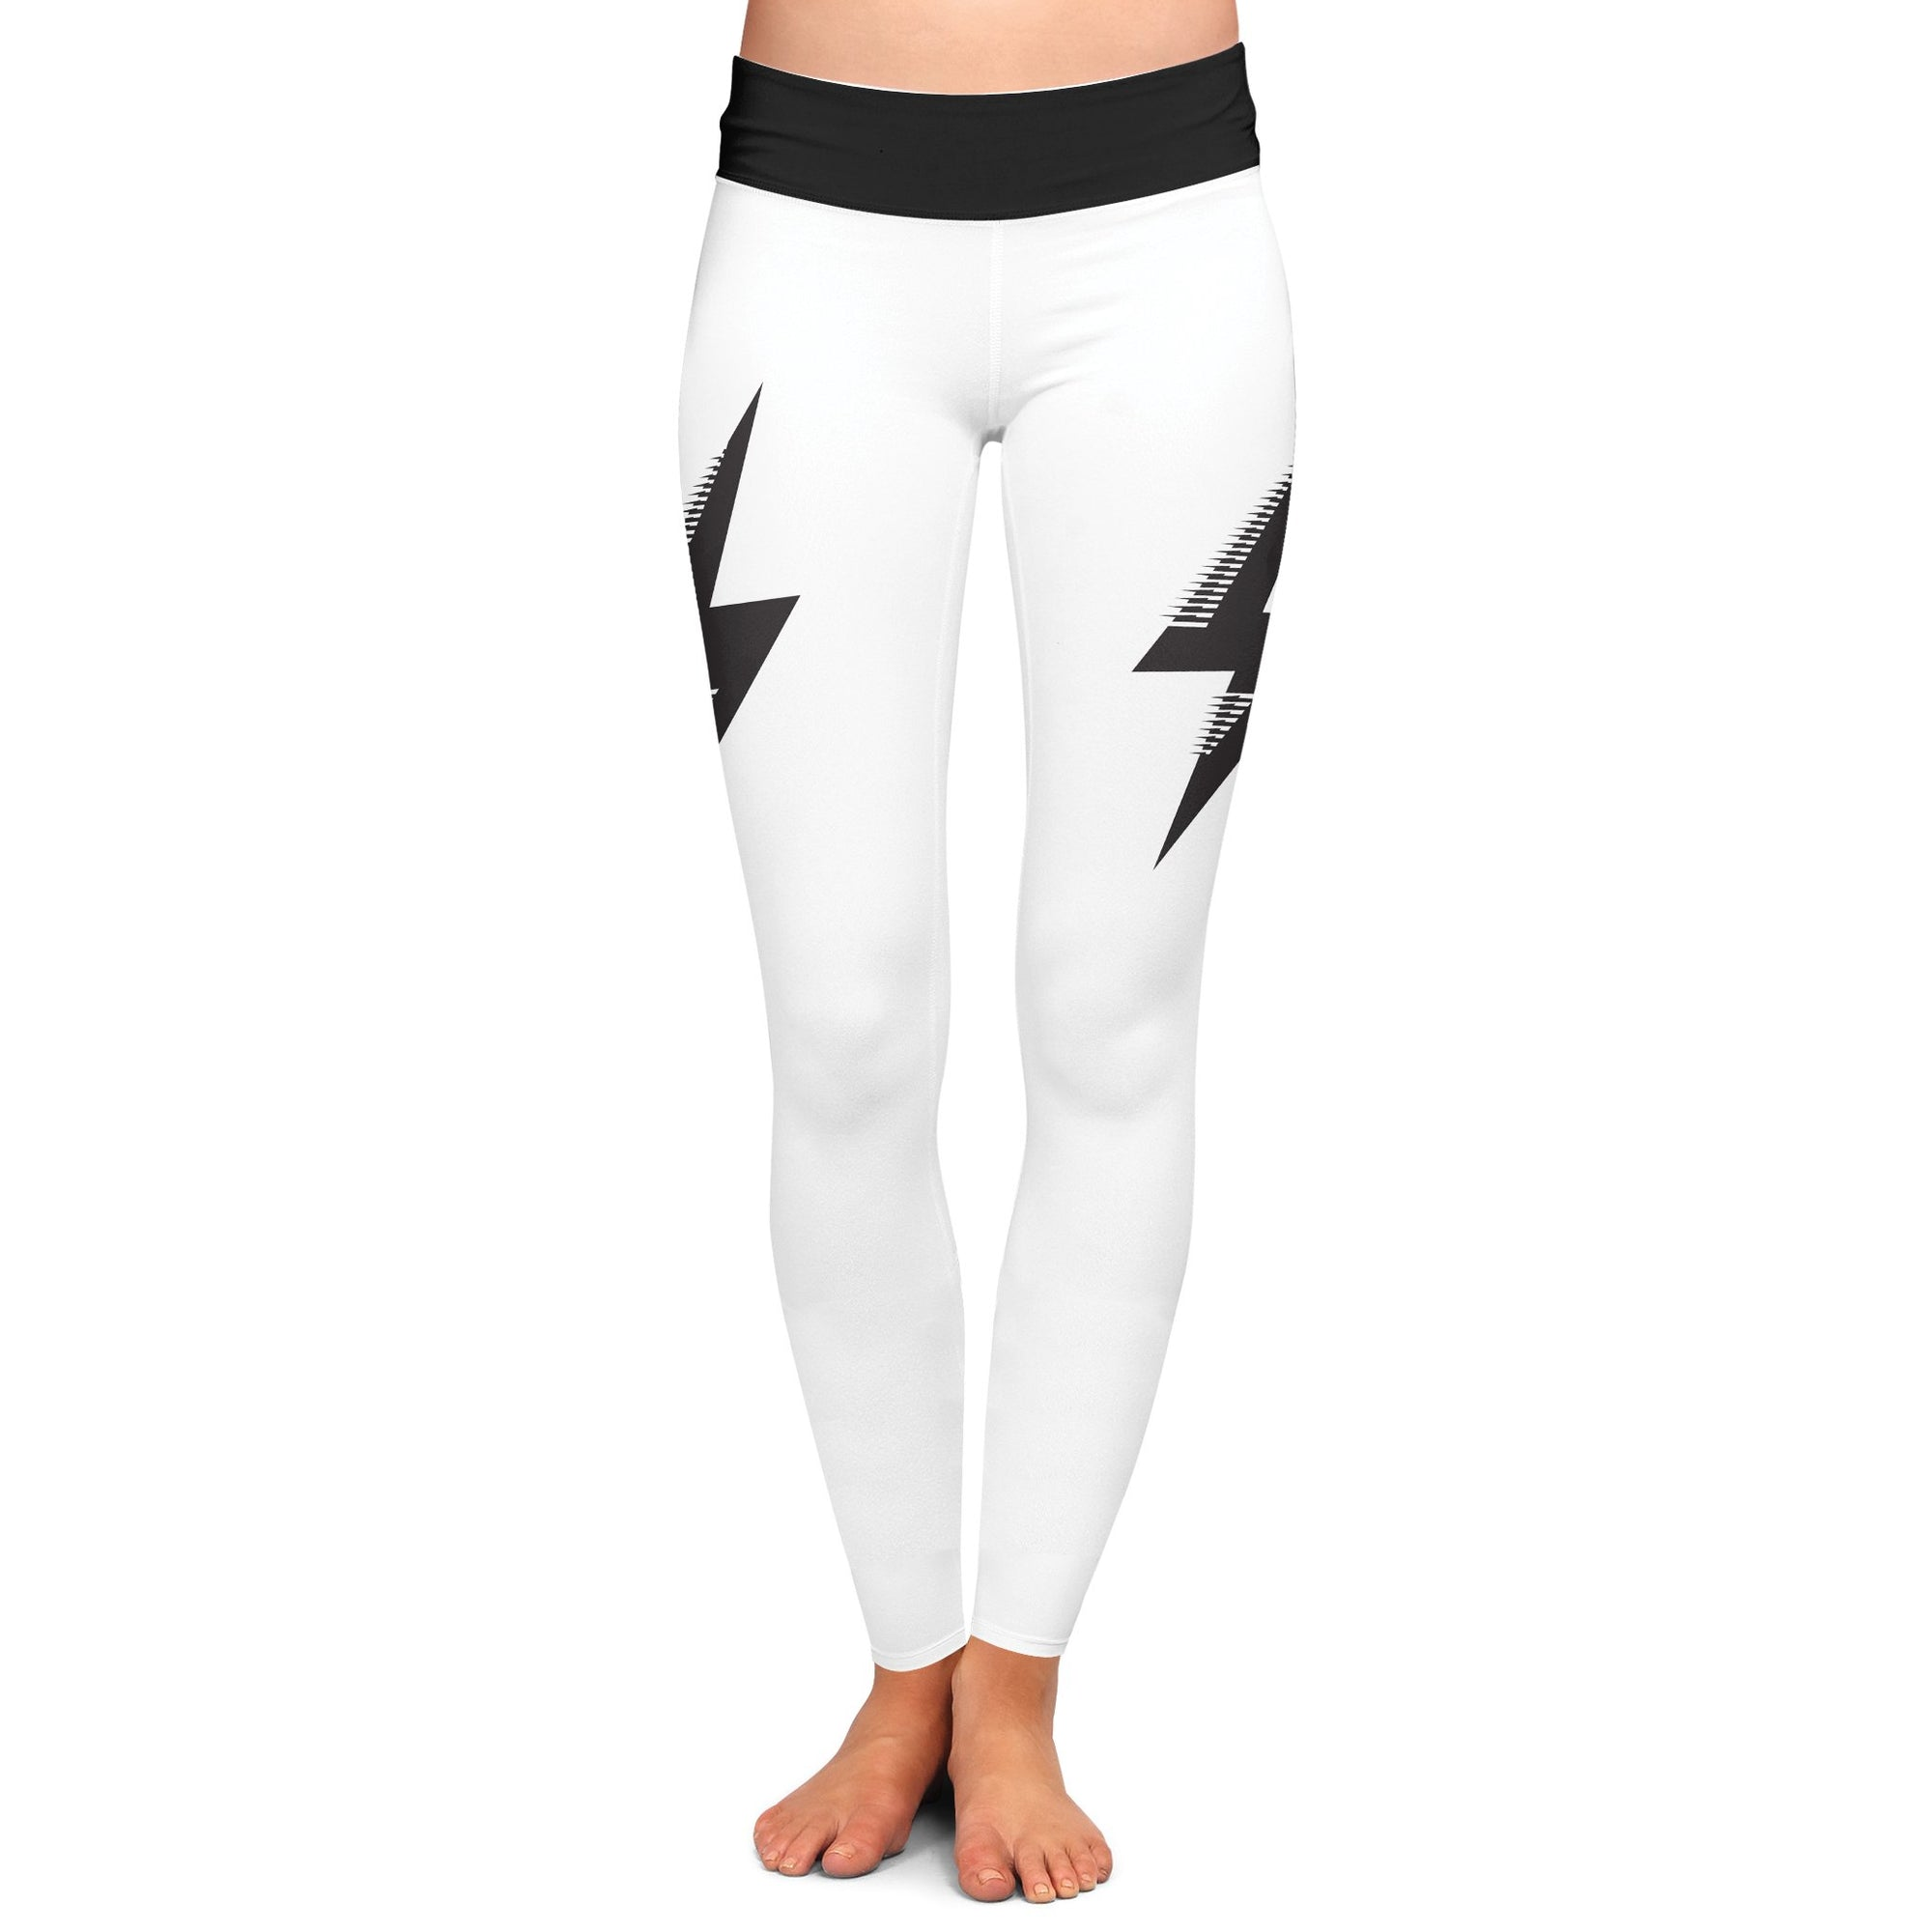 Bolt Yoga Pants | flashgordonshop.com